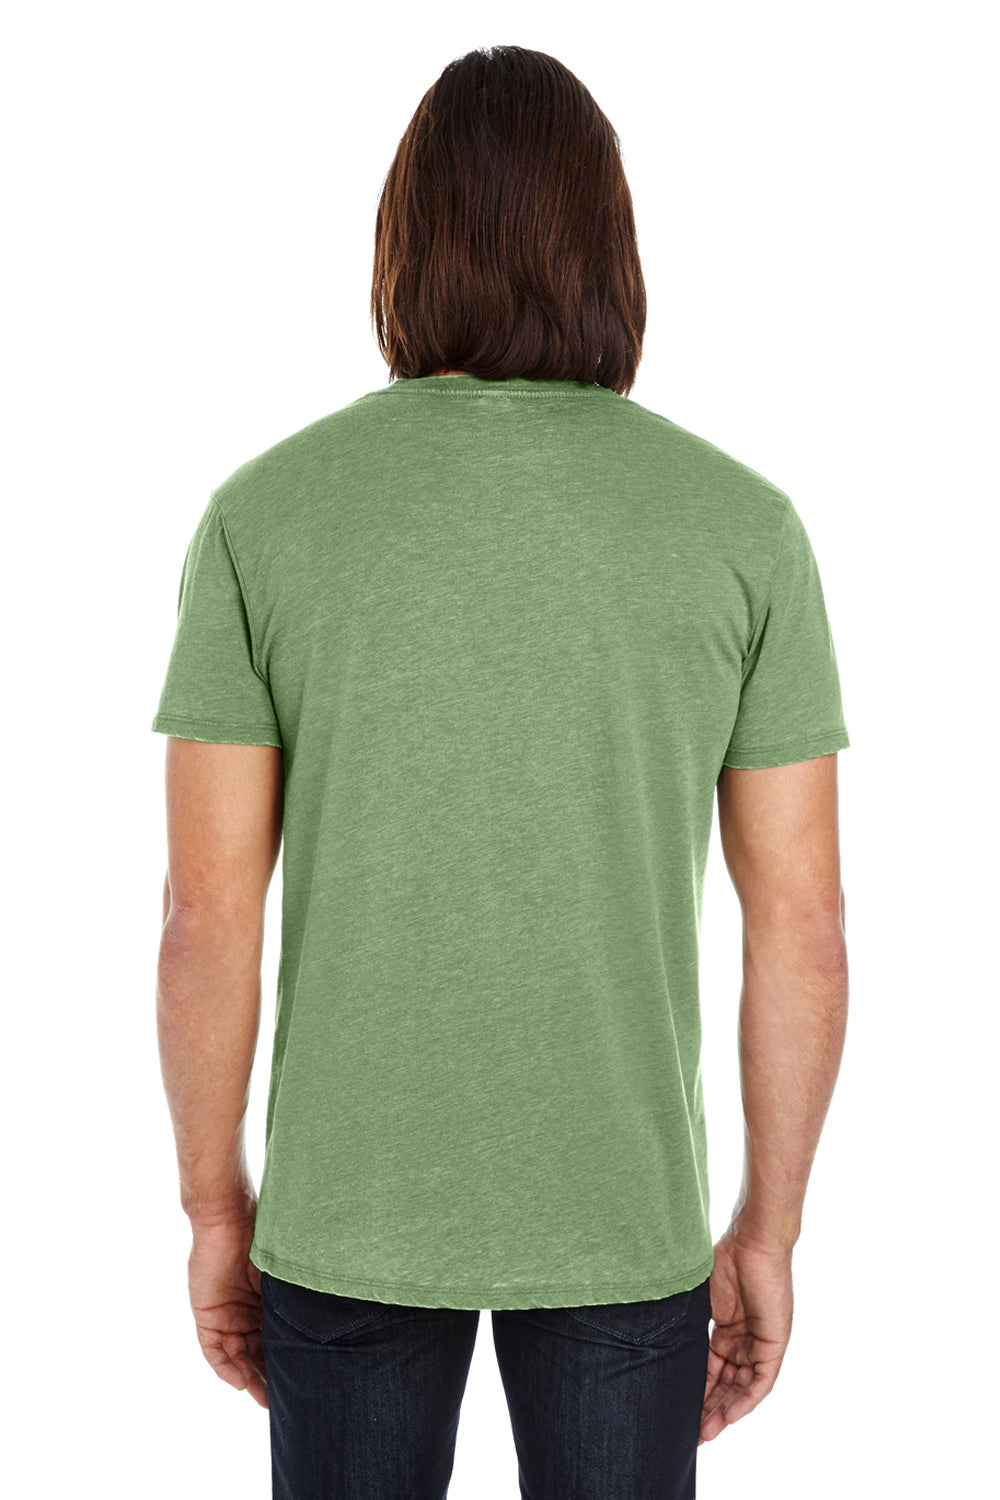 Threadfast Apparel 108A Mens Vintage Dye Short Sleeve Crewneck T-Shirt Grass Green Back